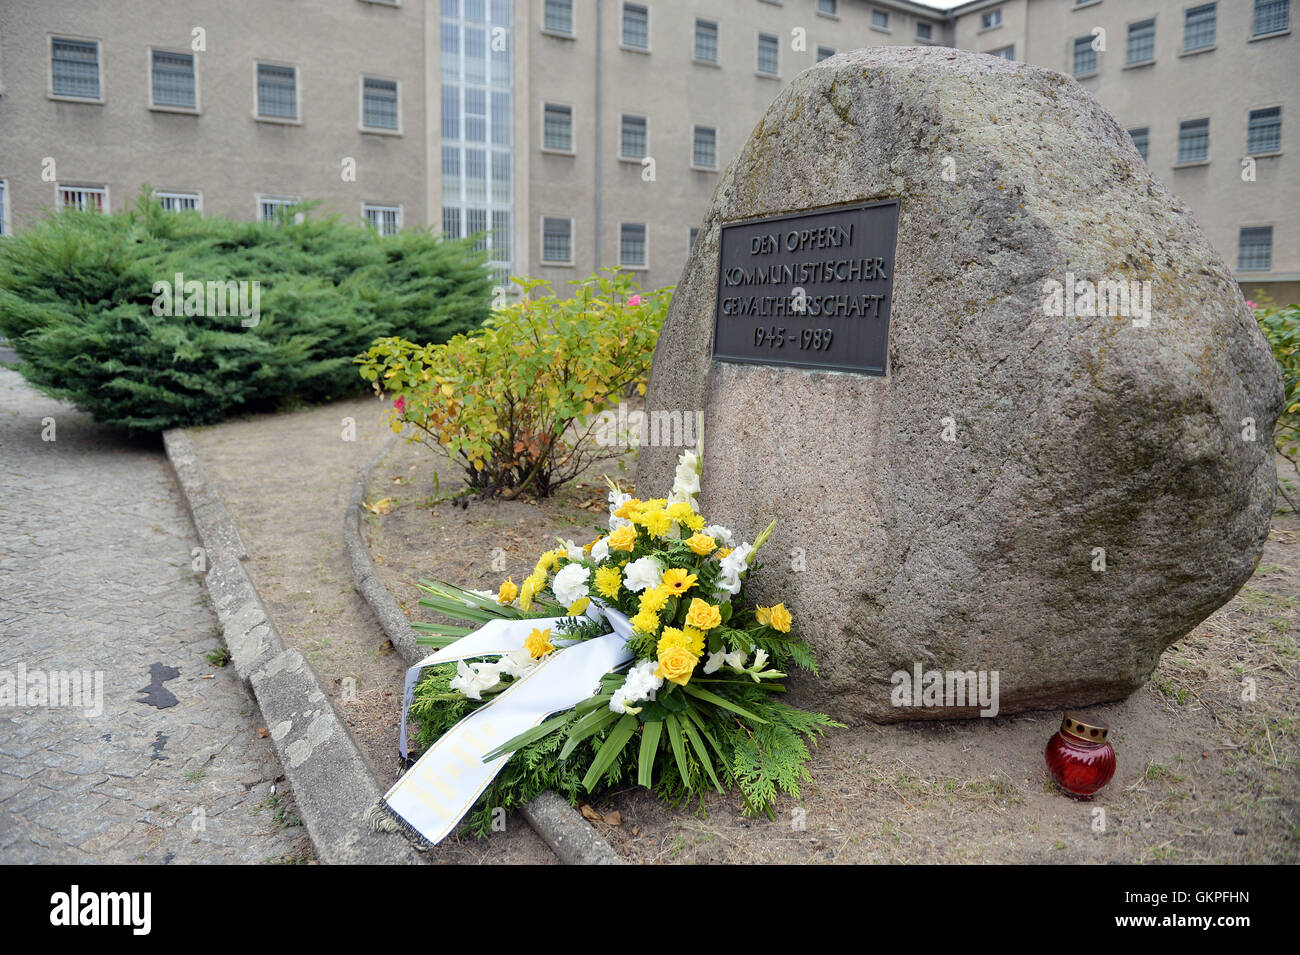 Berlin, Germany. 23rd Aug, 2016. A wreath layed to commemorate the victims of Stalinism and Nazism at the Stasi - Stock Image